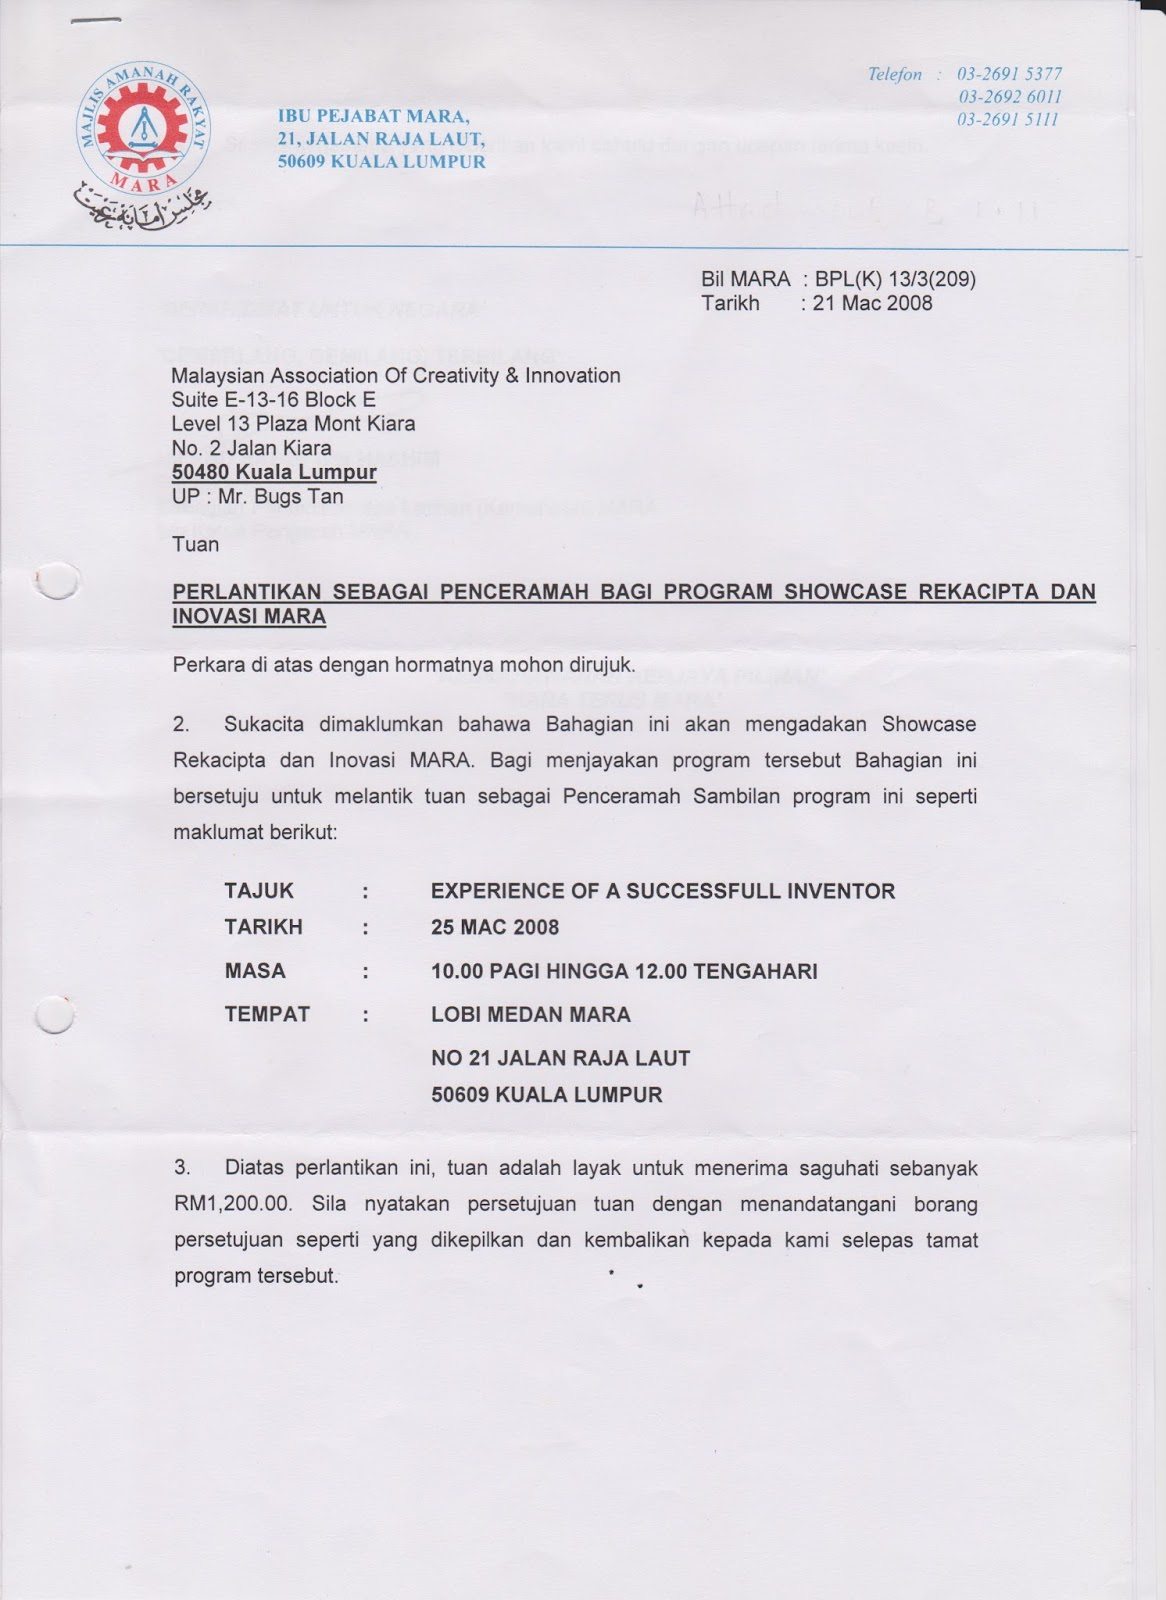 bugs tan accolades testimony and appointments 2006 to 2010 2008 letter of appointment as adjunct lecturer at the university technology petronas in tronoh perak